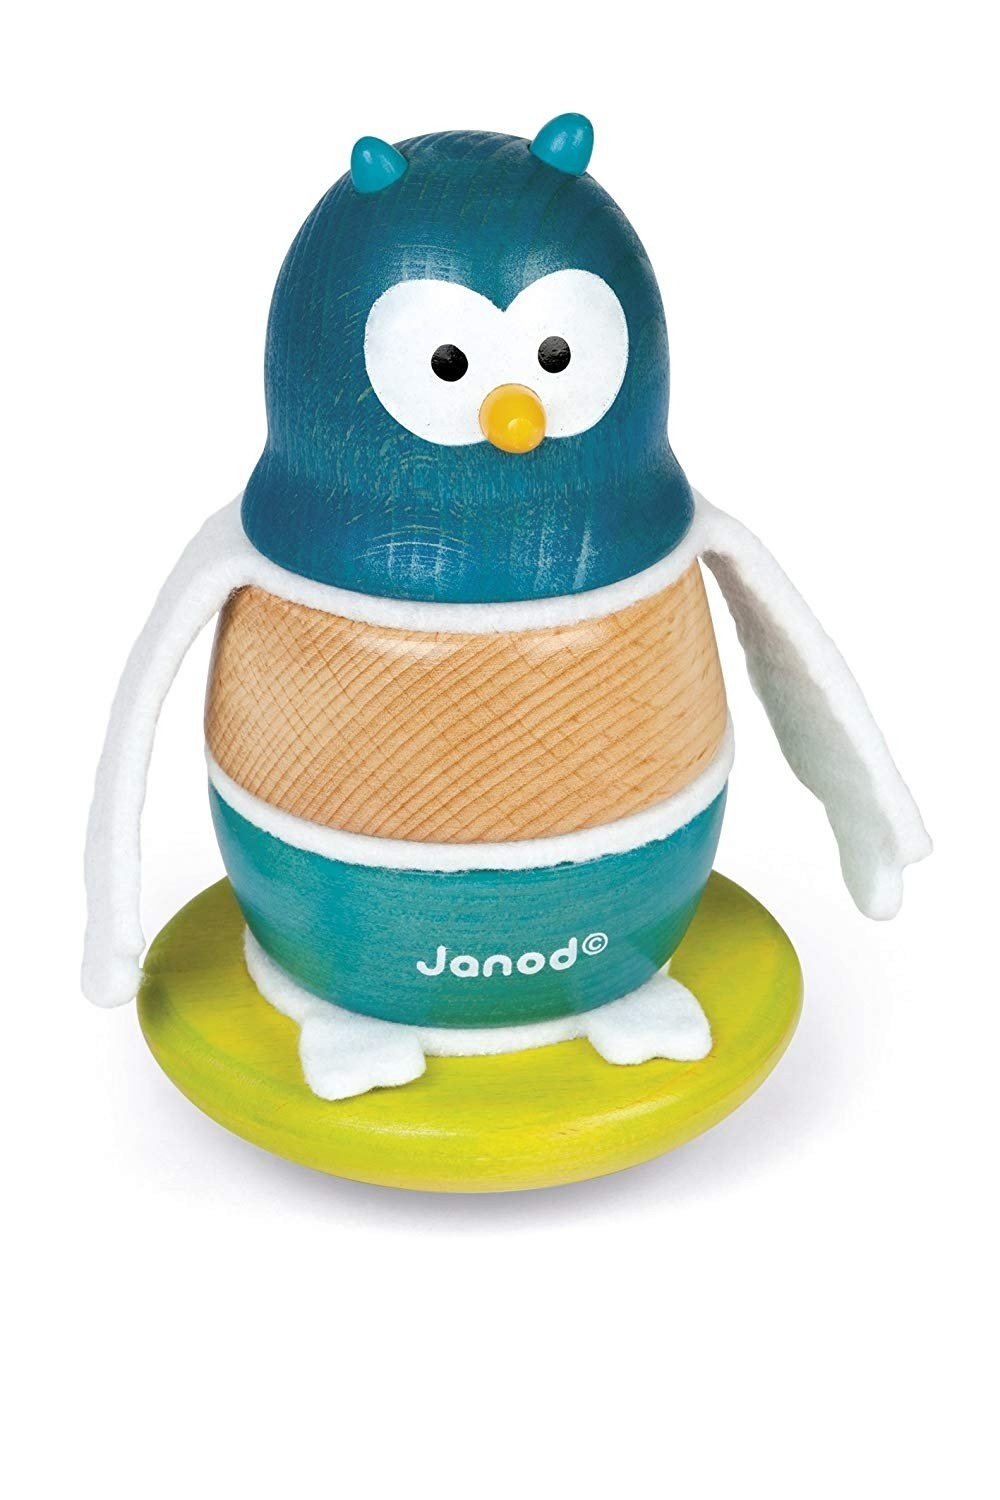 Janod ZigolosWooden Stacker And Rocker - Owl or Penguin